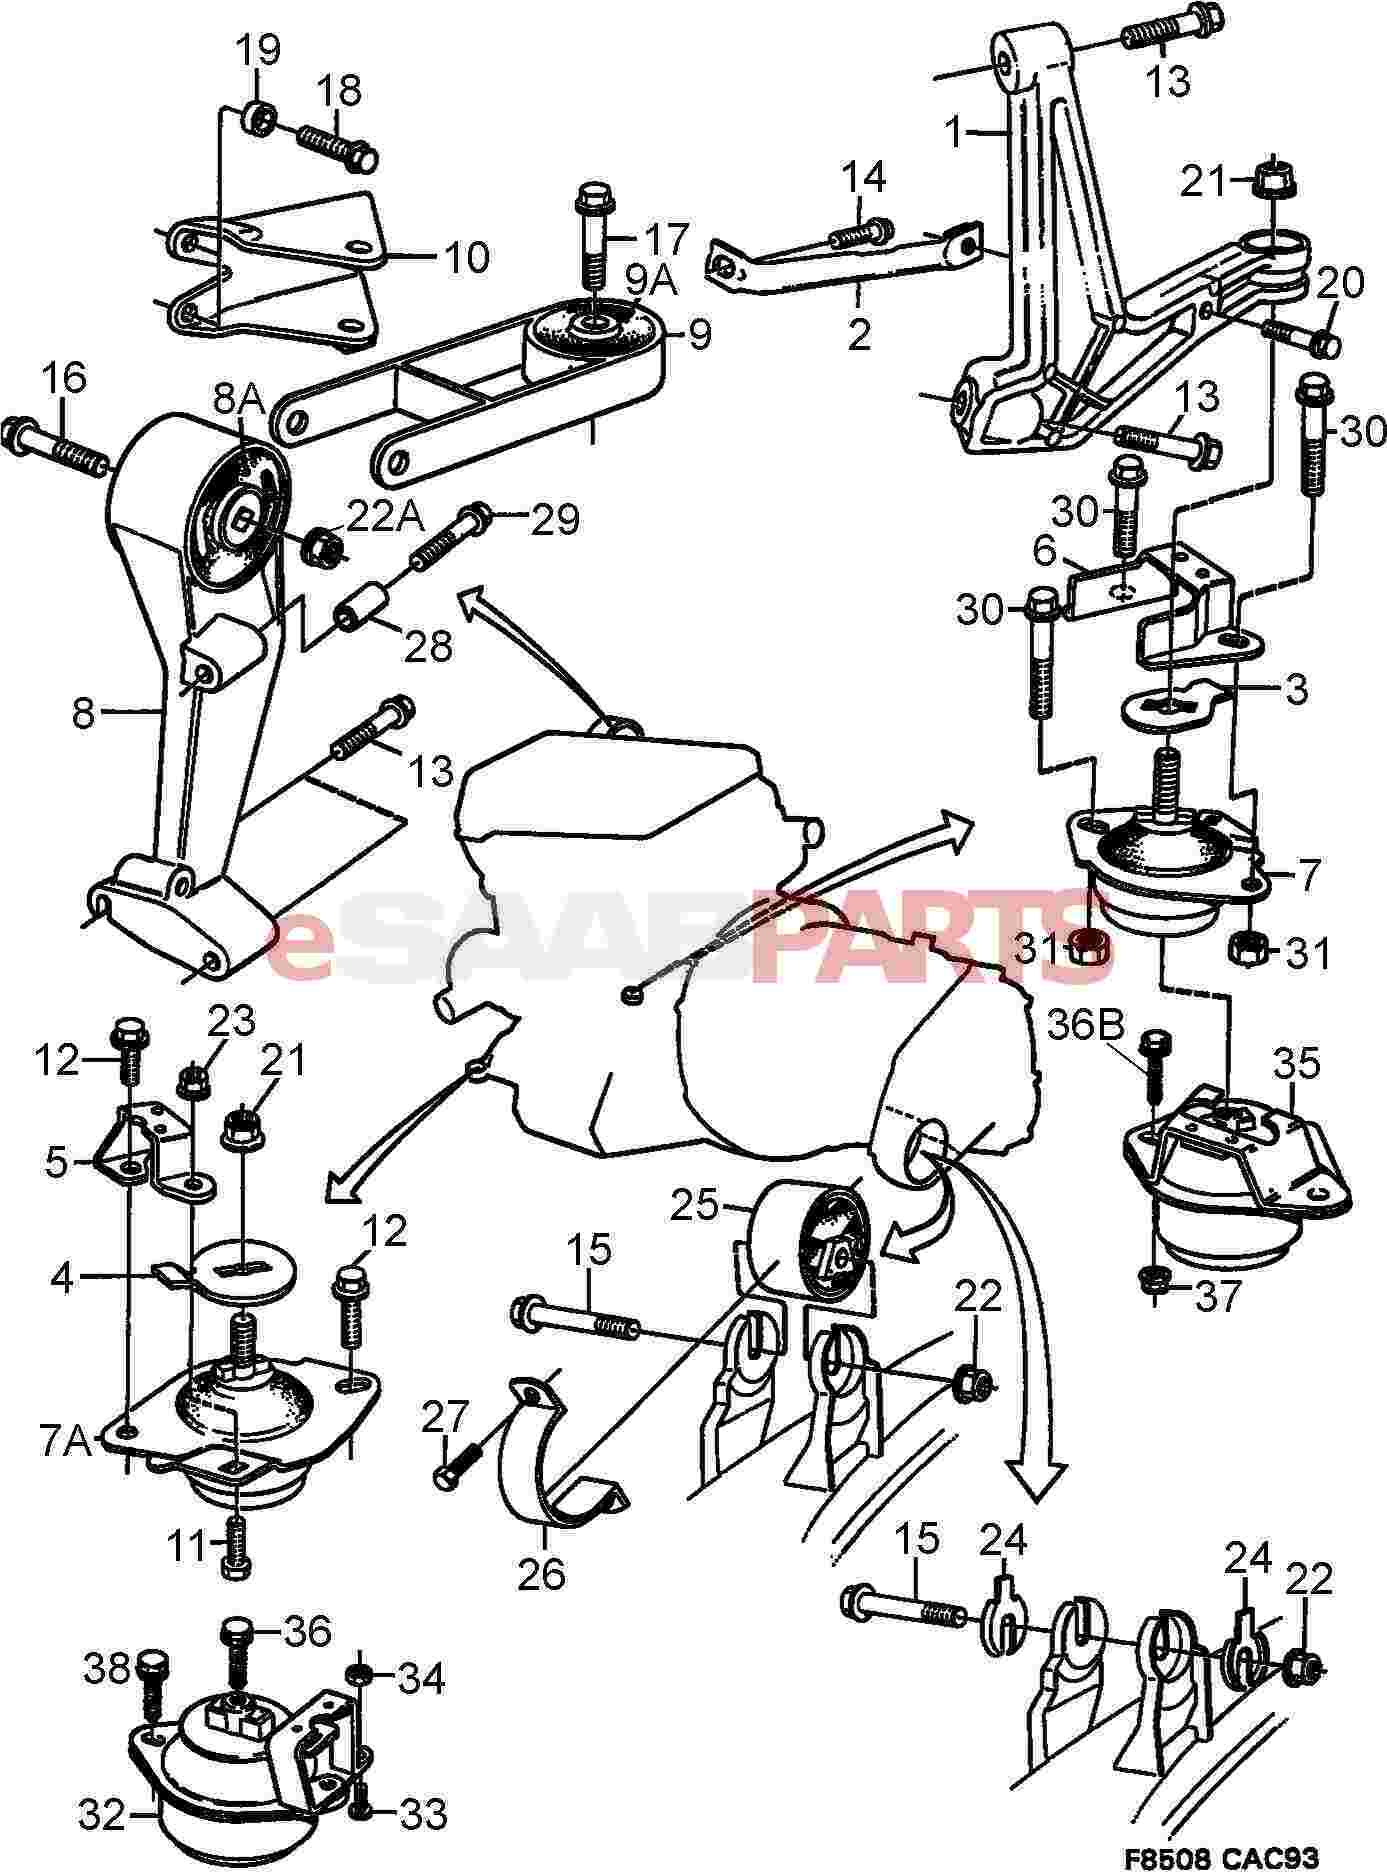 7576333 saab torque arm bushing genuine saab parts from rh esaabparts com Saab 9 3 Parts Diagram Motor Diagram 2003 Saab 9 3 2.0T